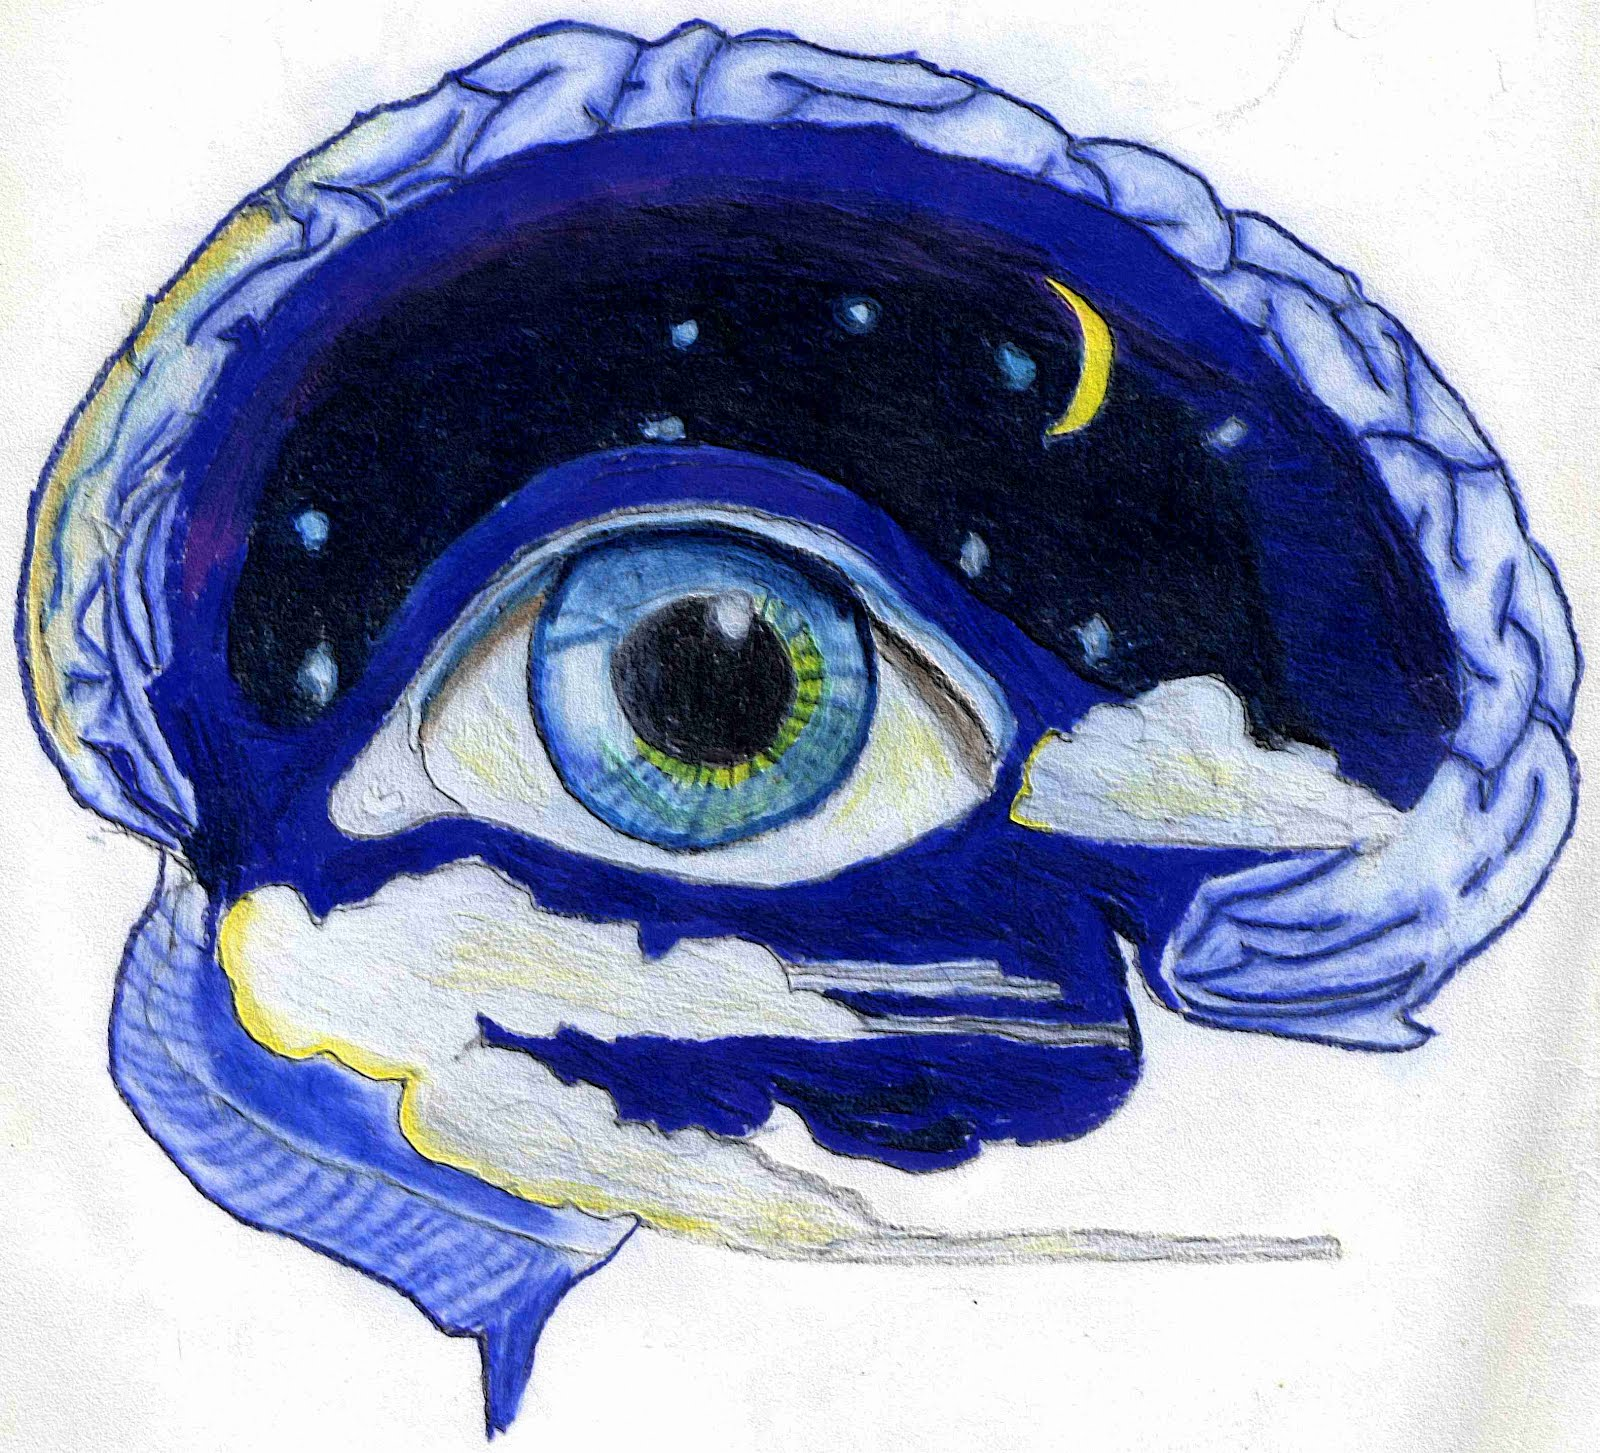 Pineal Gland's Third Eye: One Of The Biggest Cover-ups in Human History